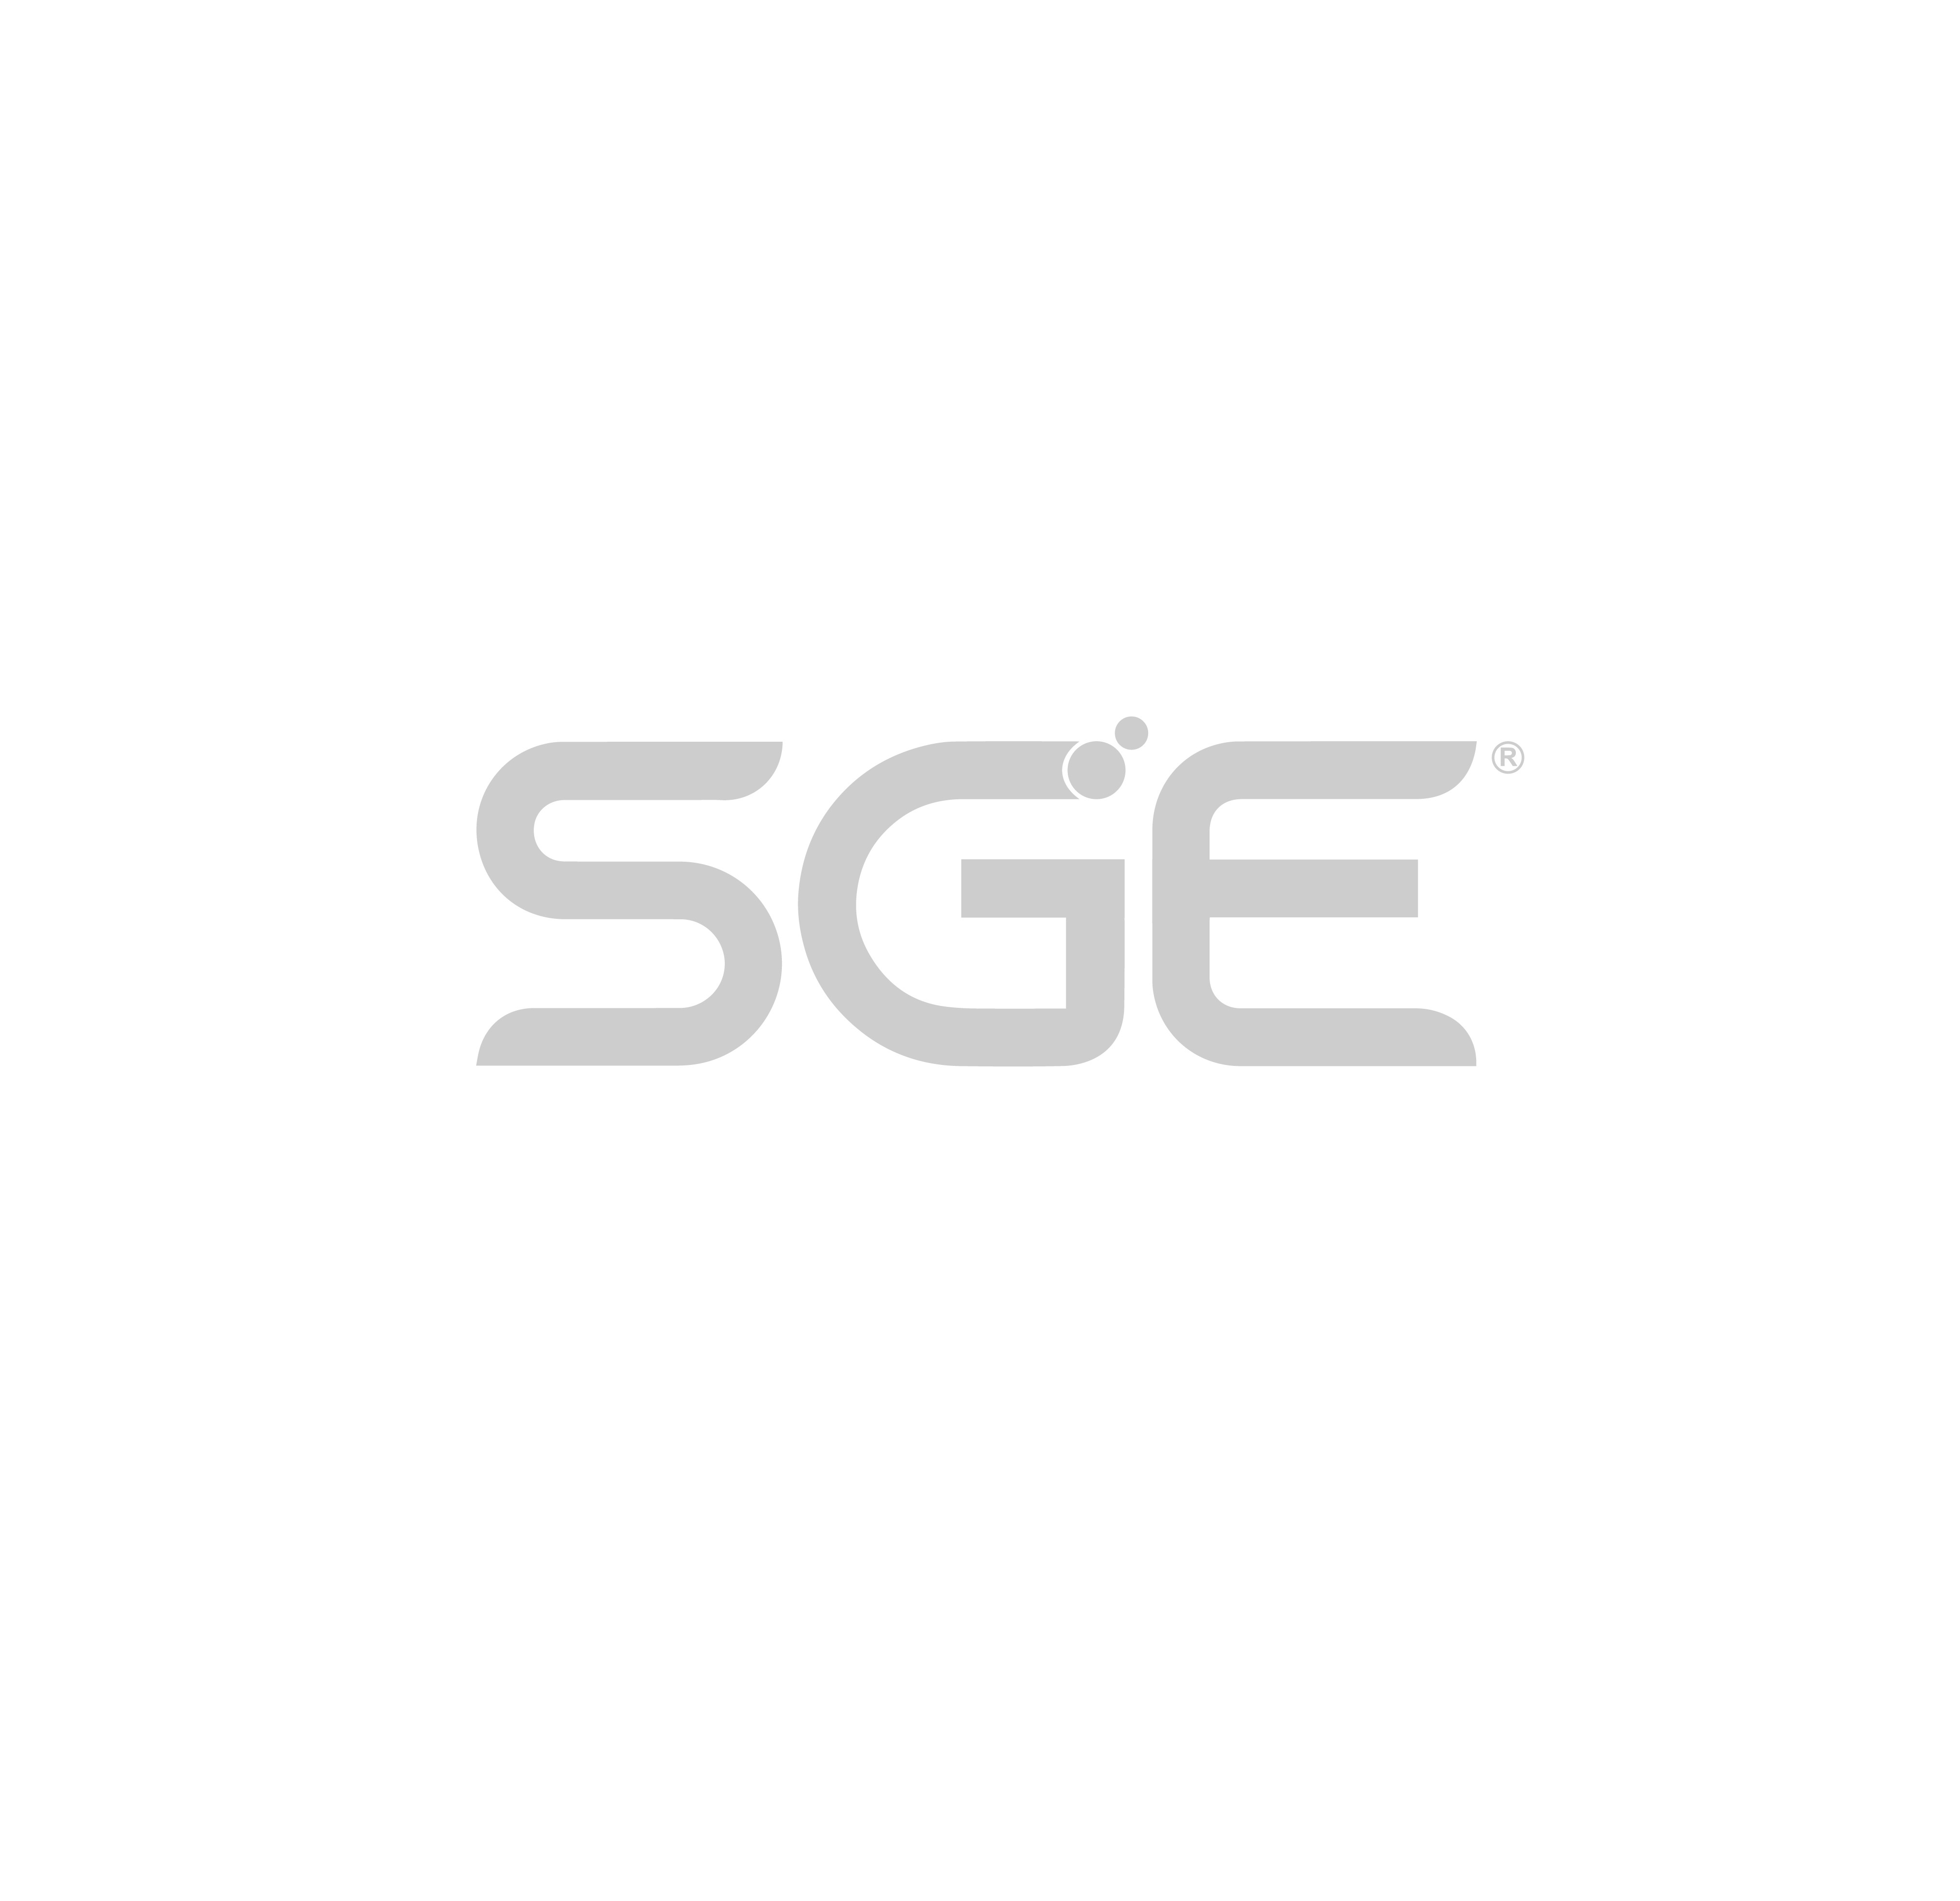 Led Cob 7W Blanco Frio 127Vca 65Ma. 630Lm-700Lm 6000-6500K 26.5Mm